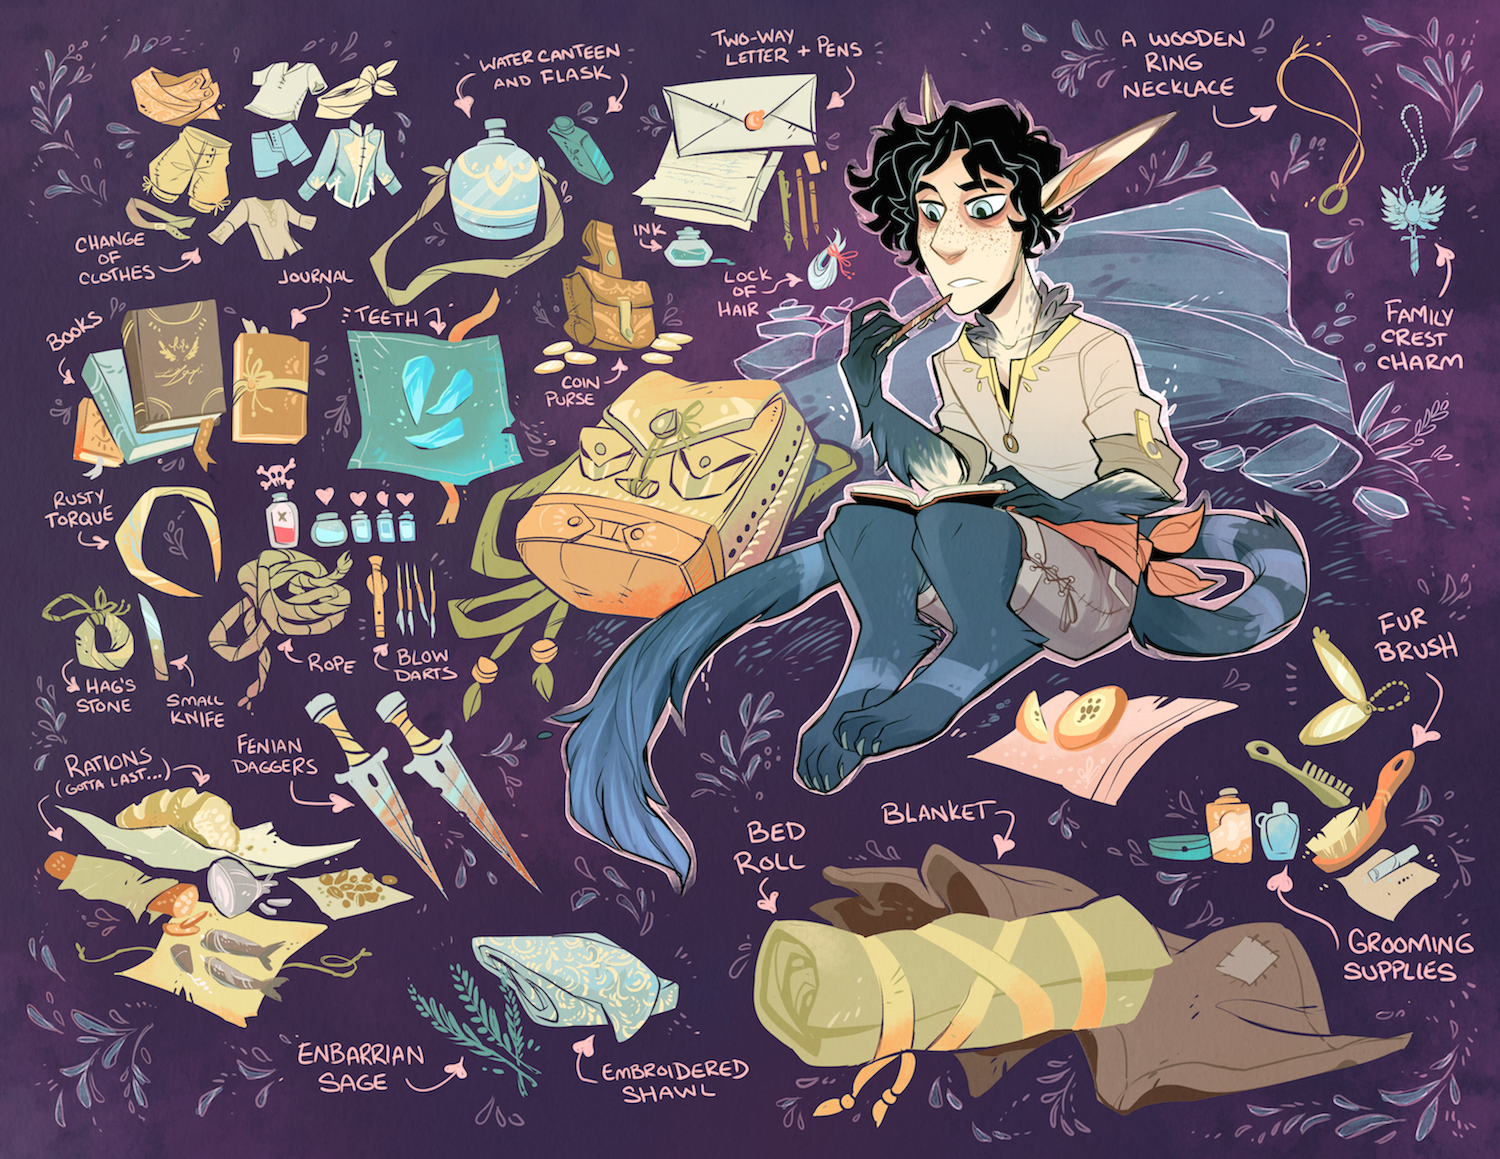 DnD - Whats In Vals Bag on Fenian.png